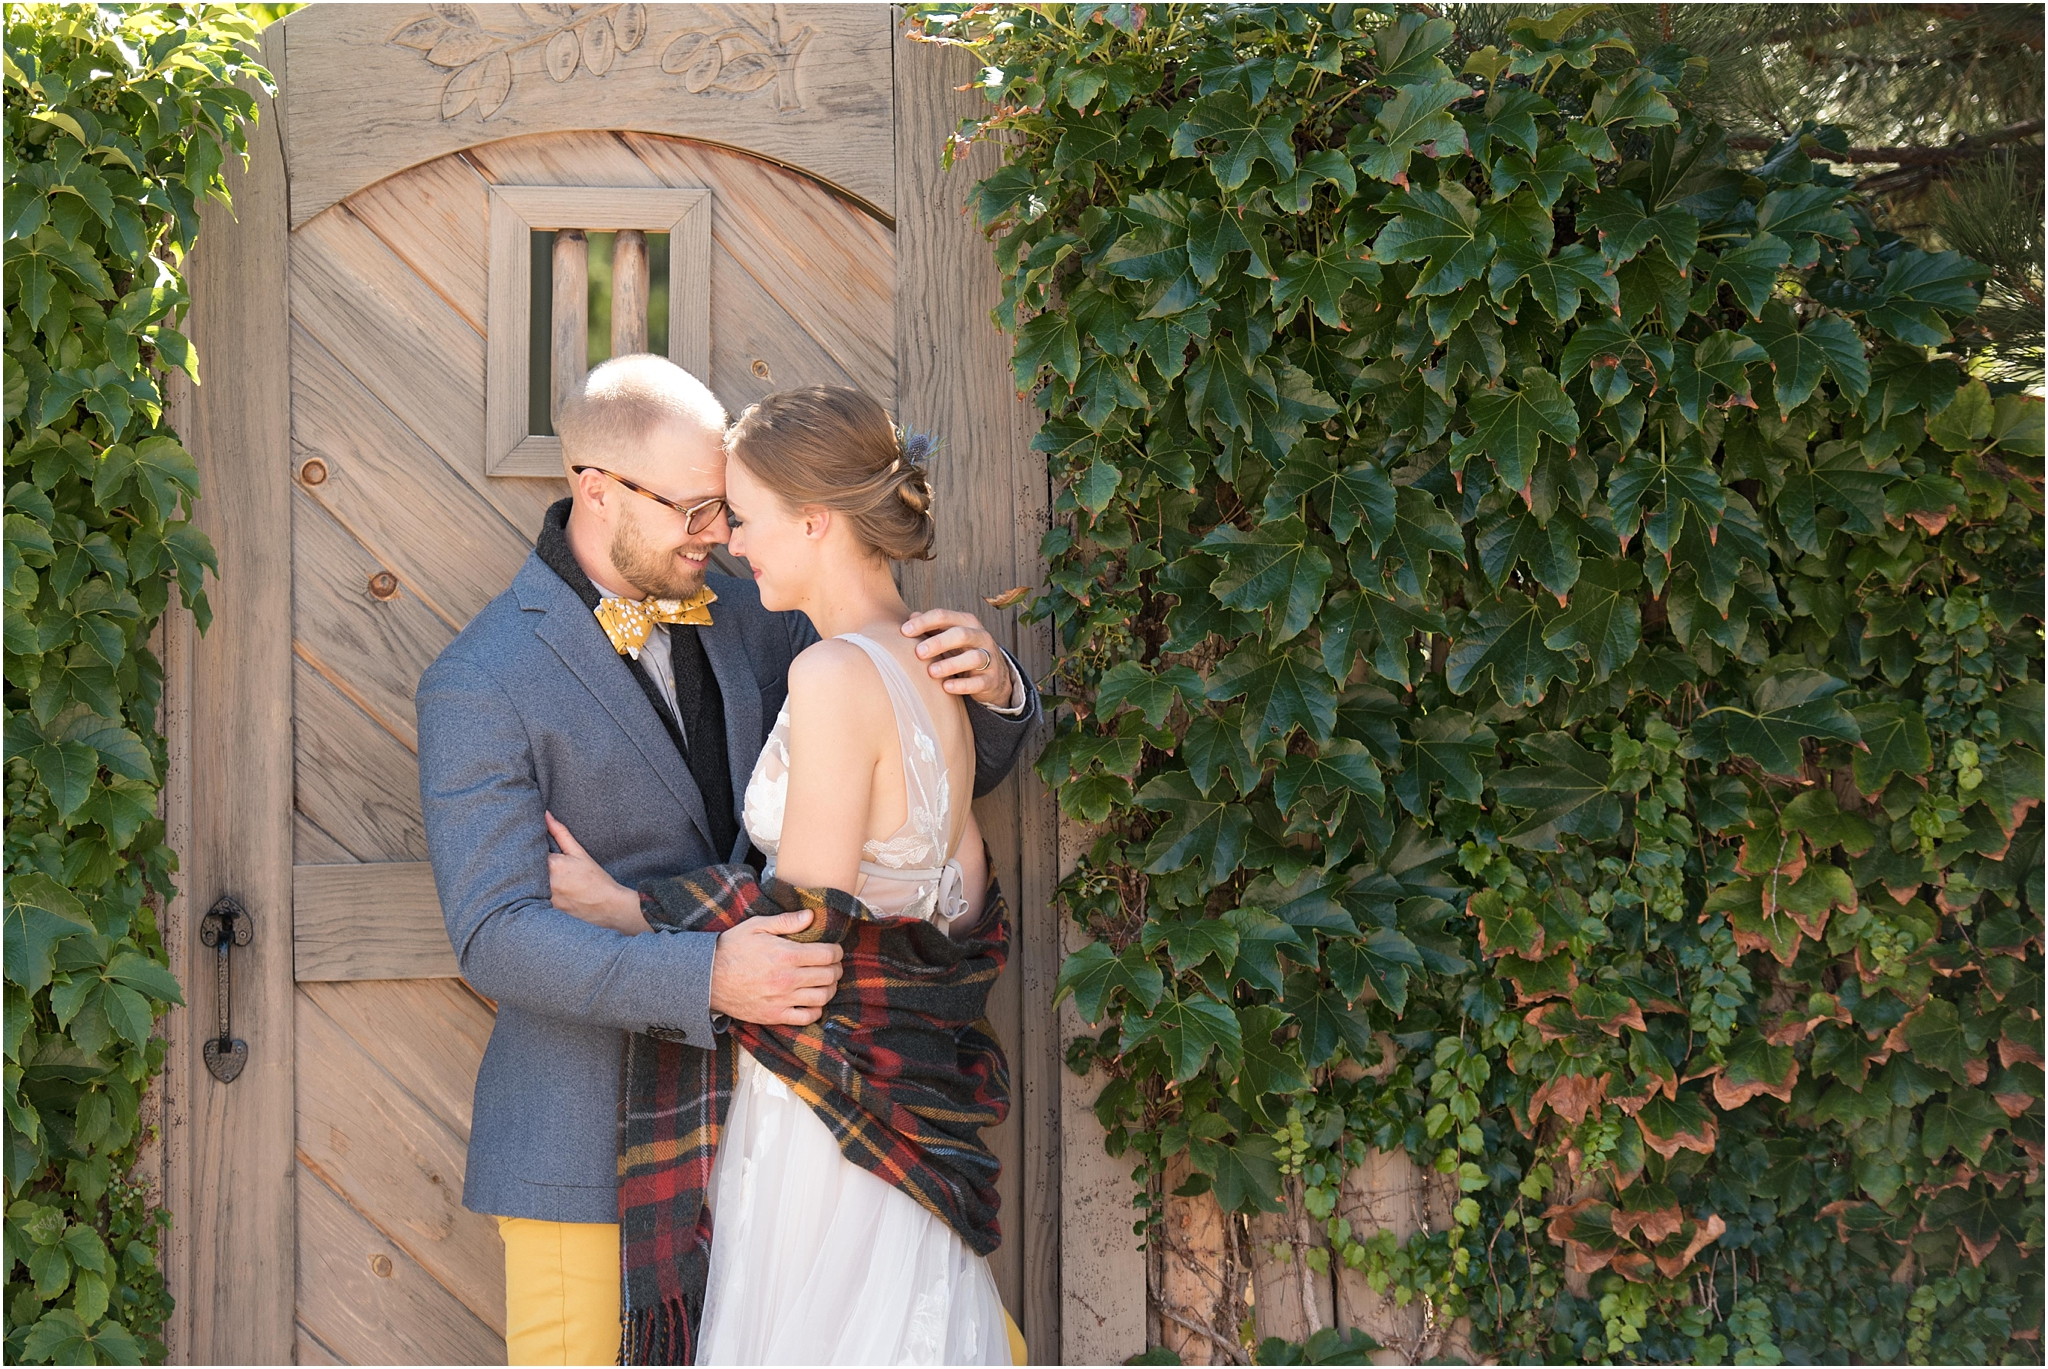 kaylakittsphotography-mary-kevin_0035.jpg